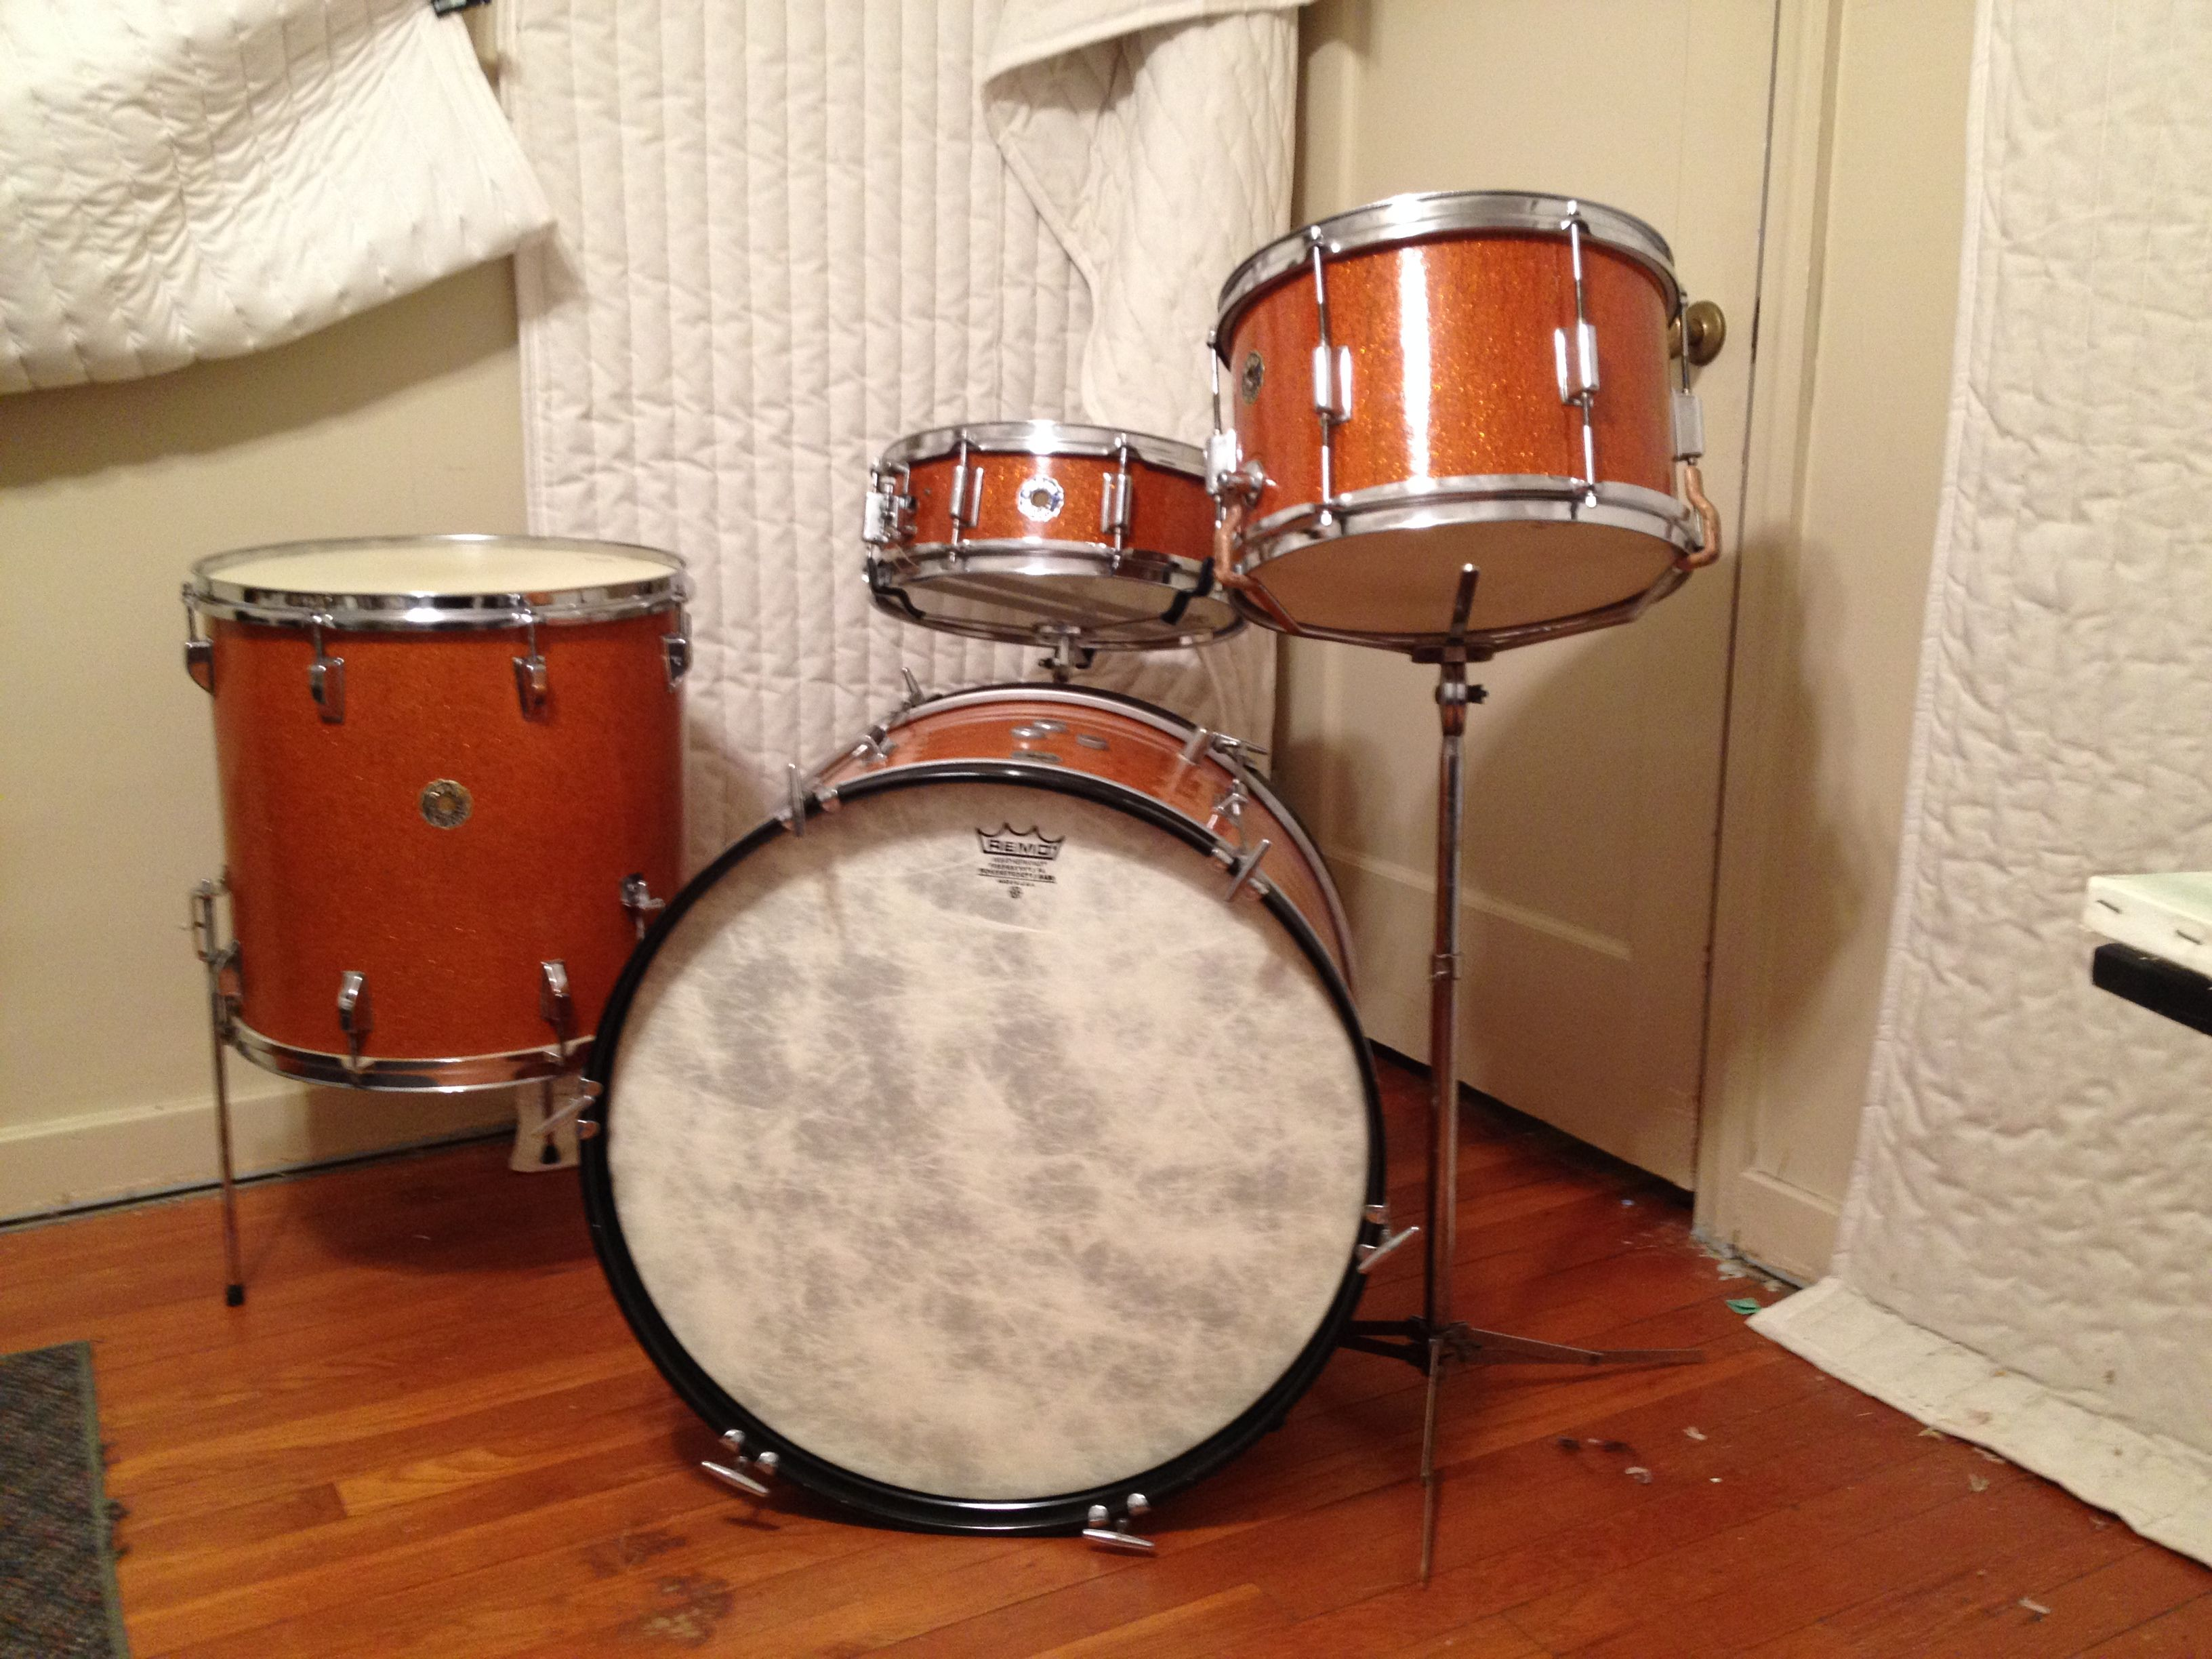 13 16 22 Orange Sparkle 4x14 Max Roach Size Snare Fiberskyn Powerstroke 3 Batter And Reso Bass Heads And Aquarian Modern Vintage Bass Head Drums Drum Heads